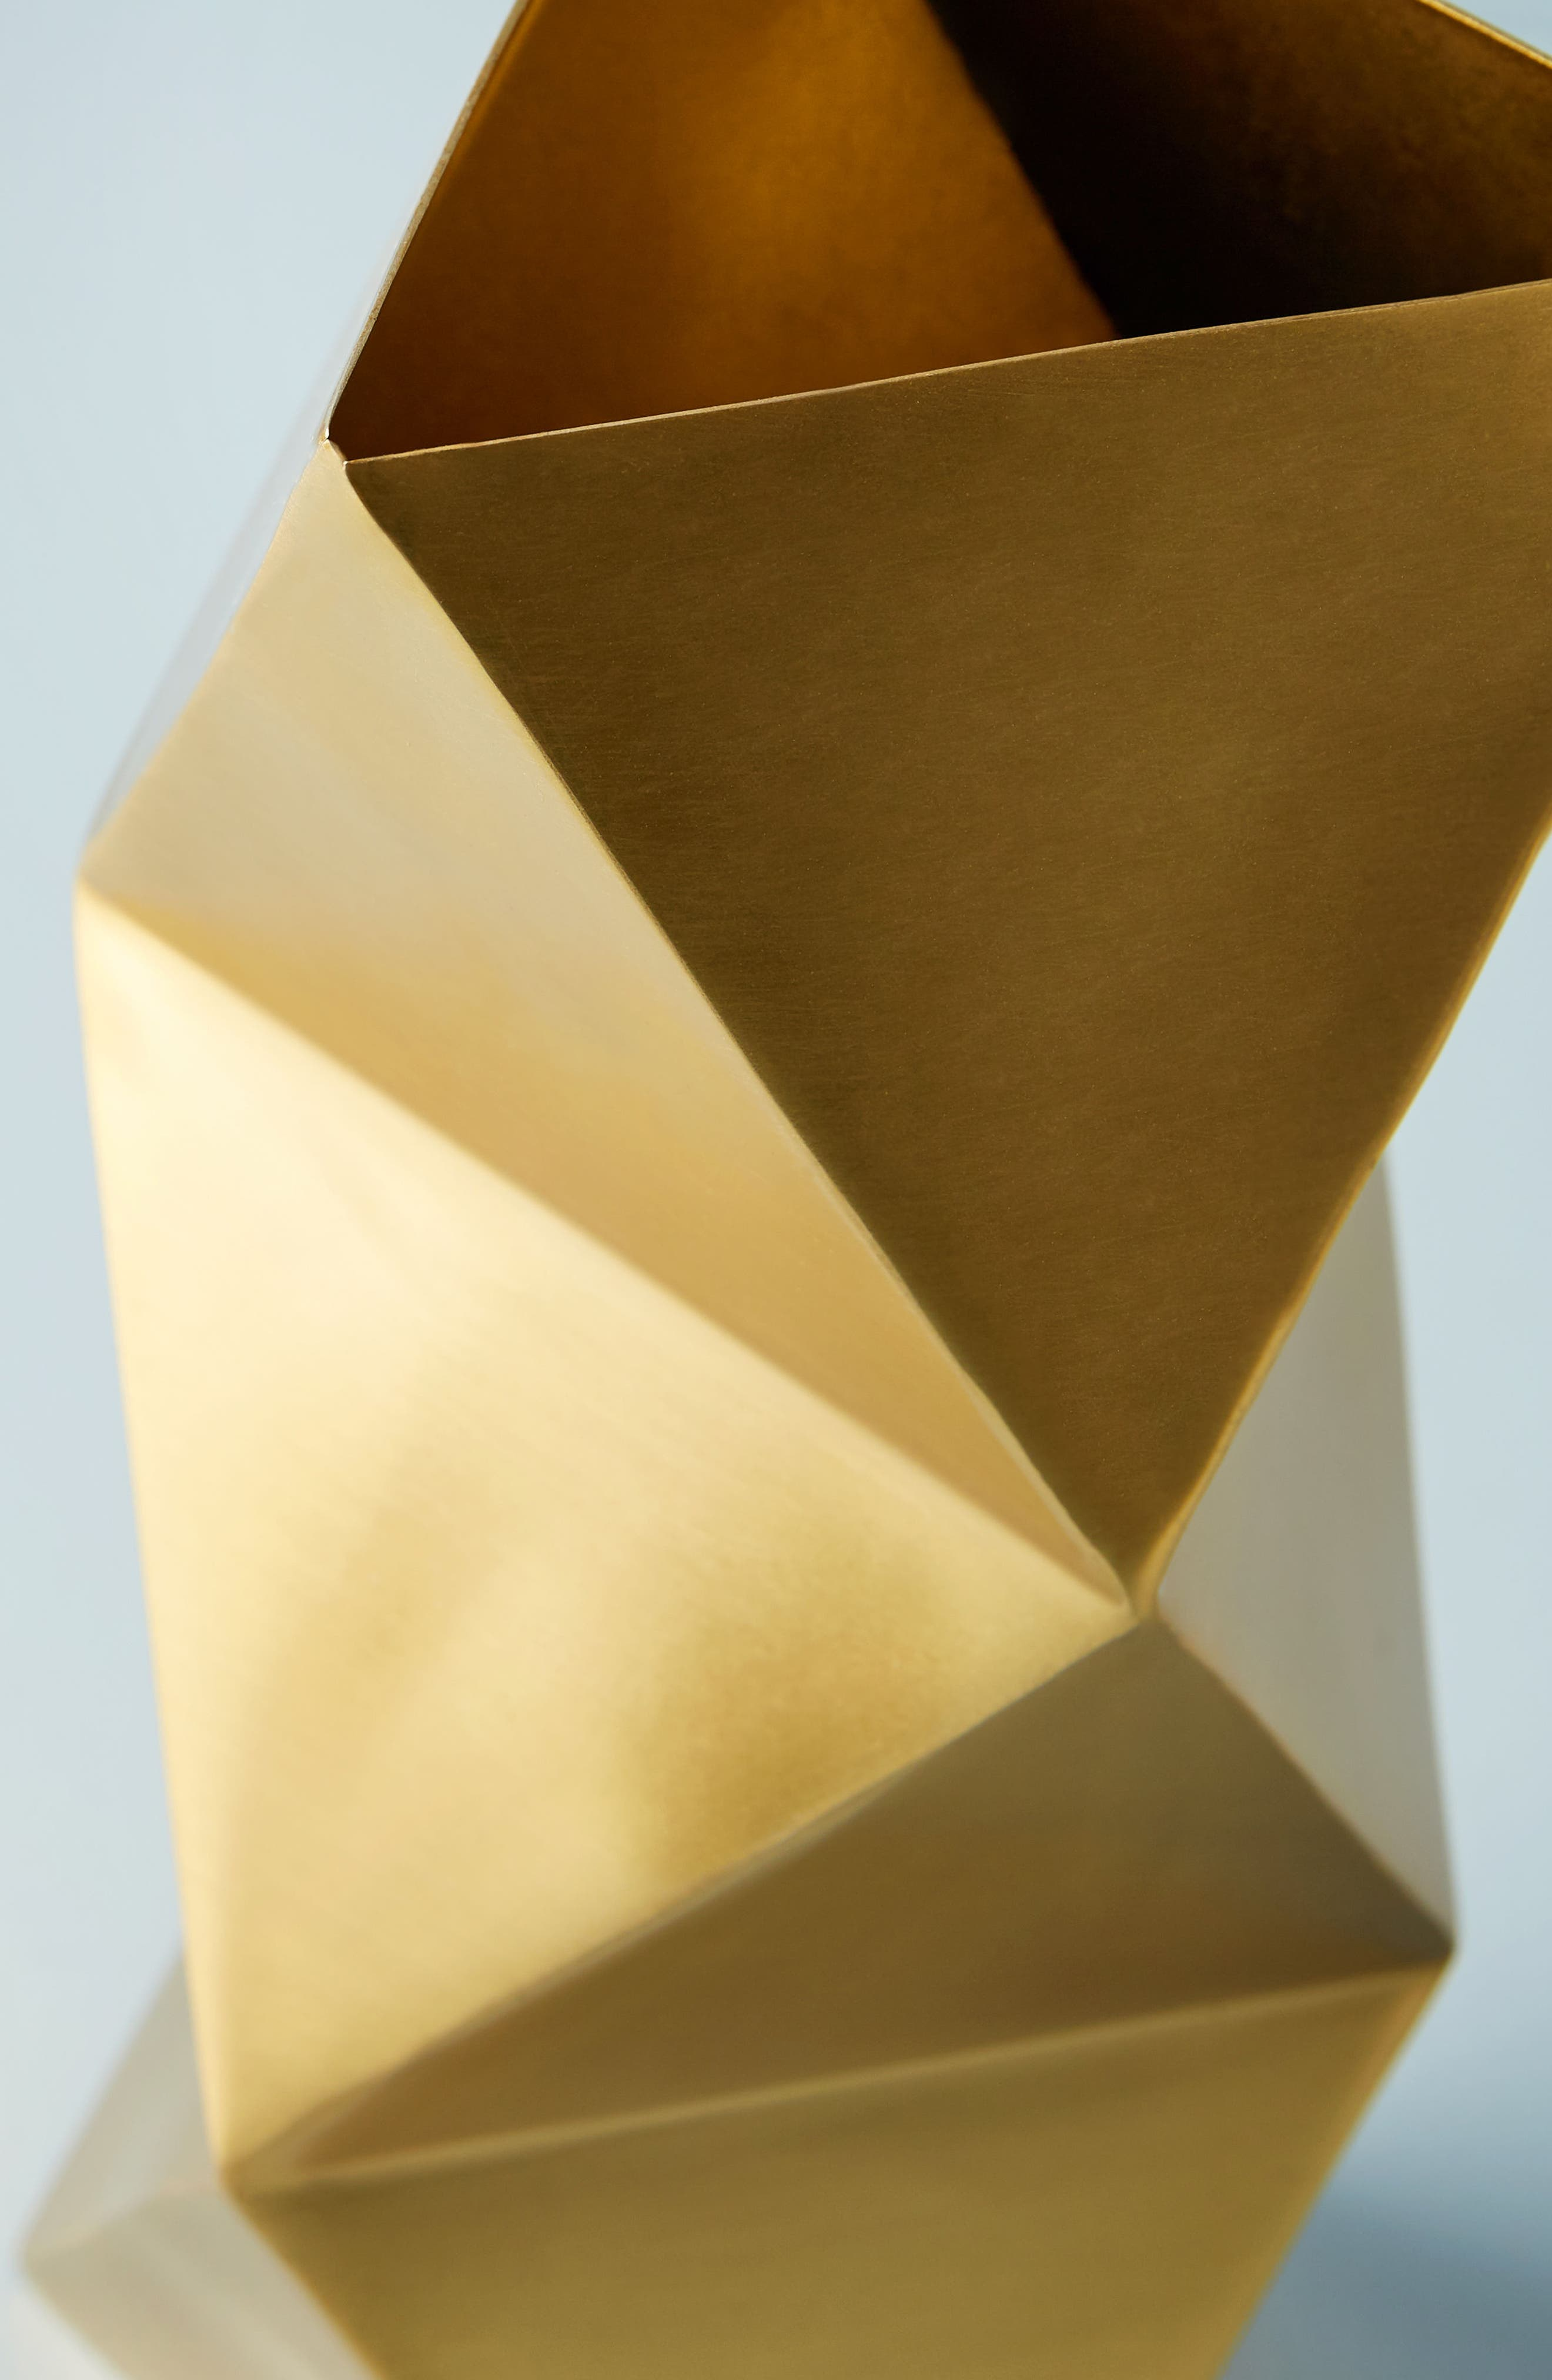 Faceted Triangle Metal Vase,                             Alternate thumbnail 2, color,                             Gold